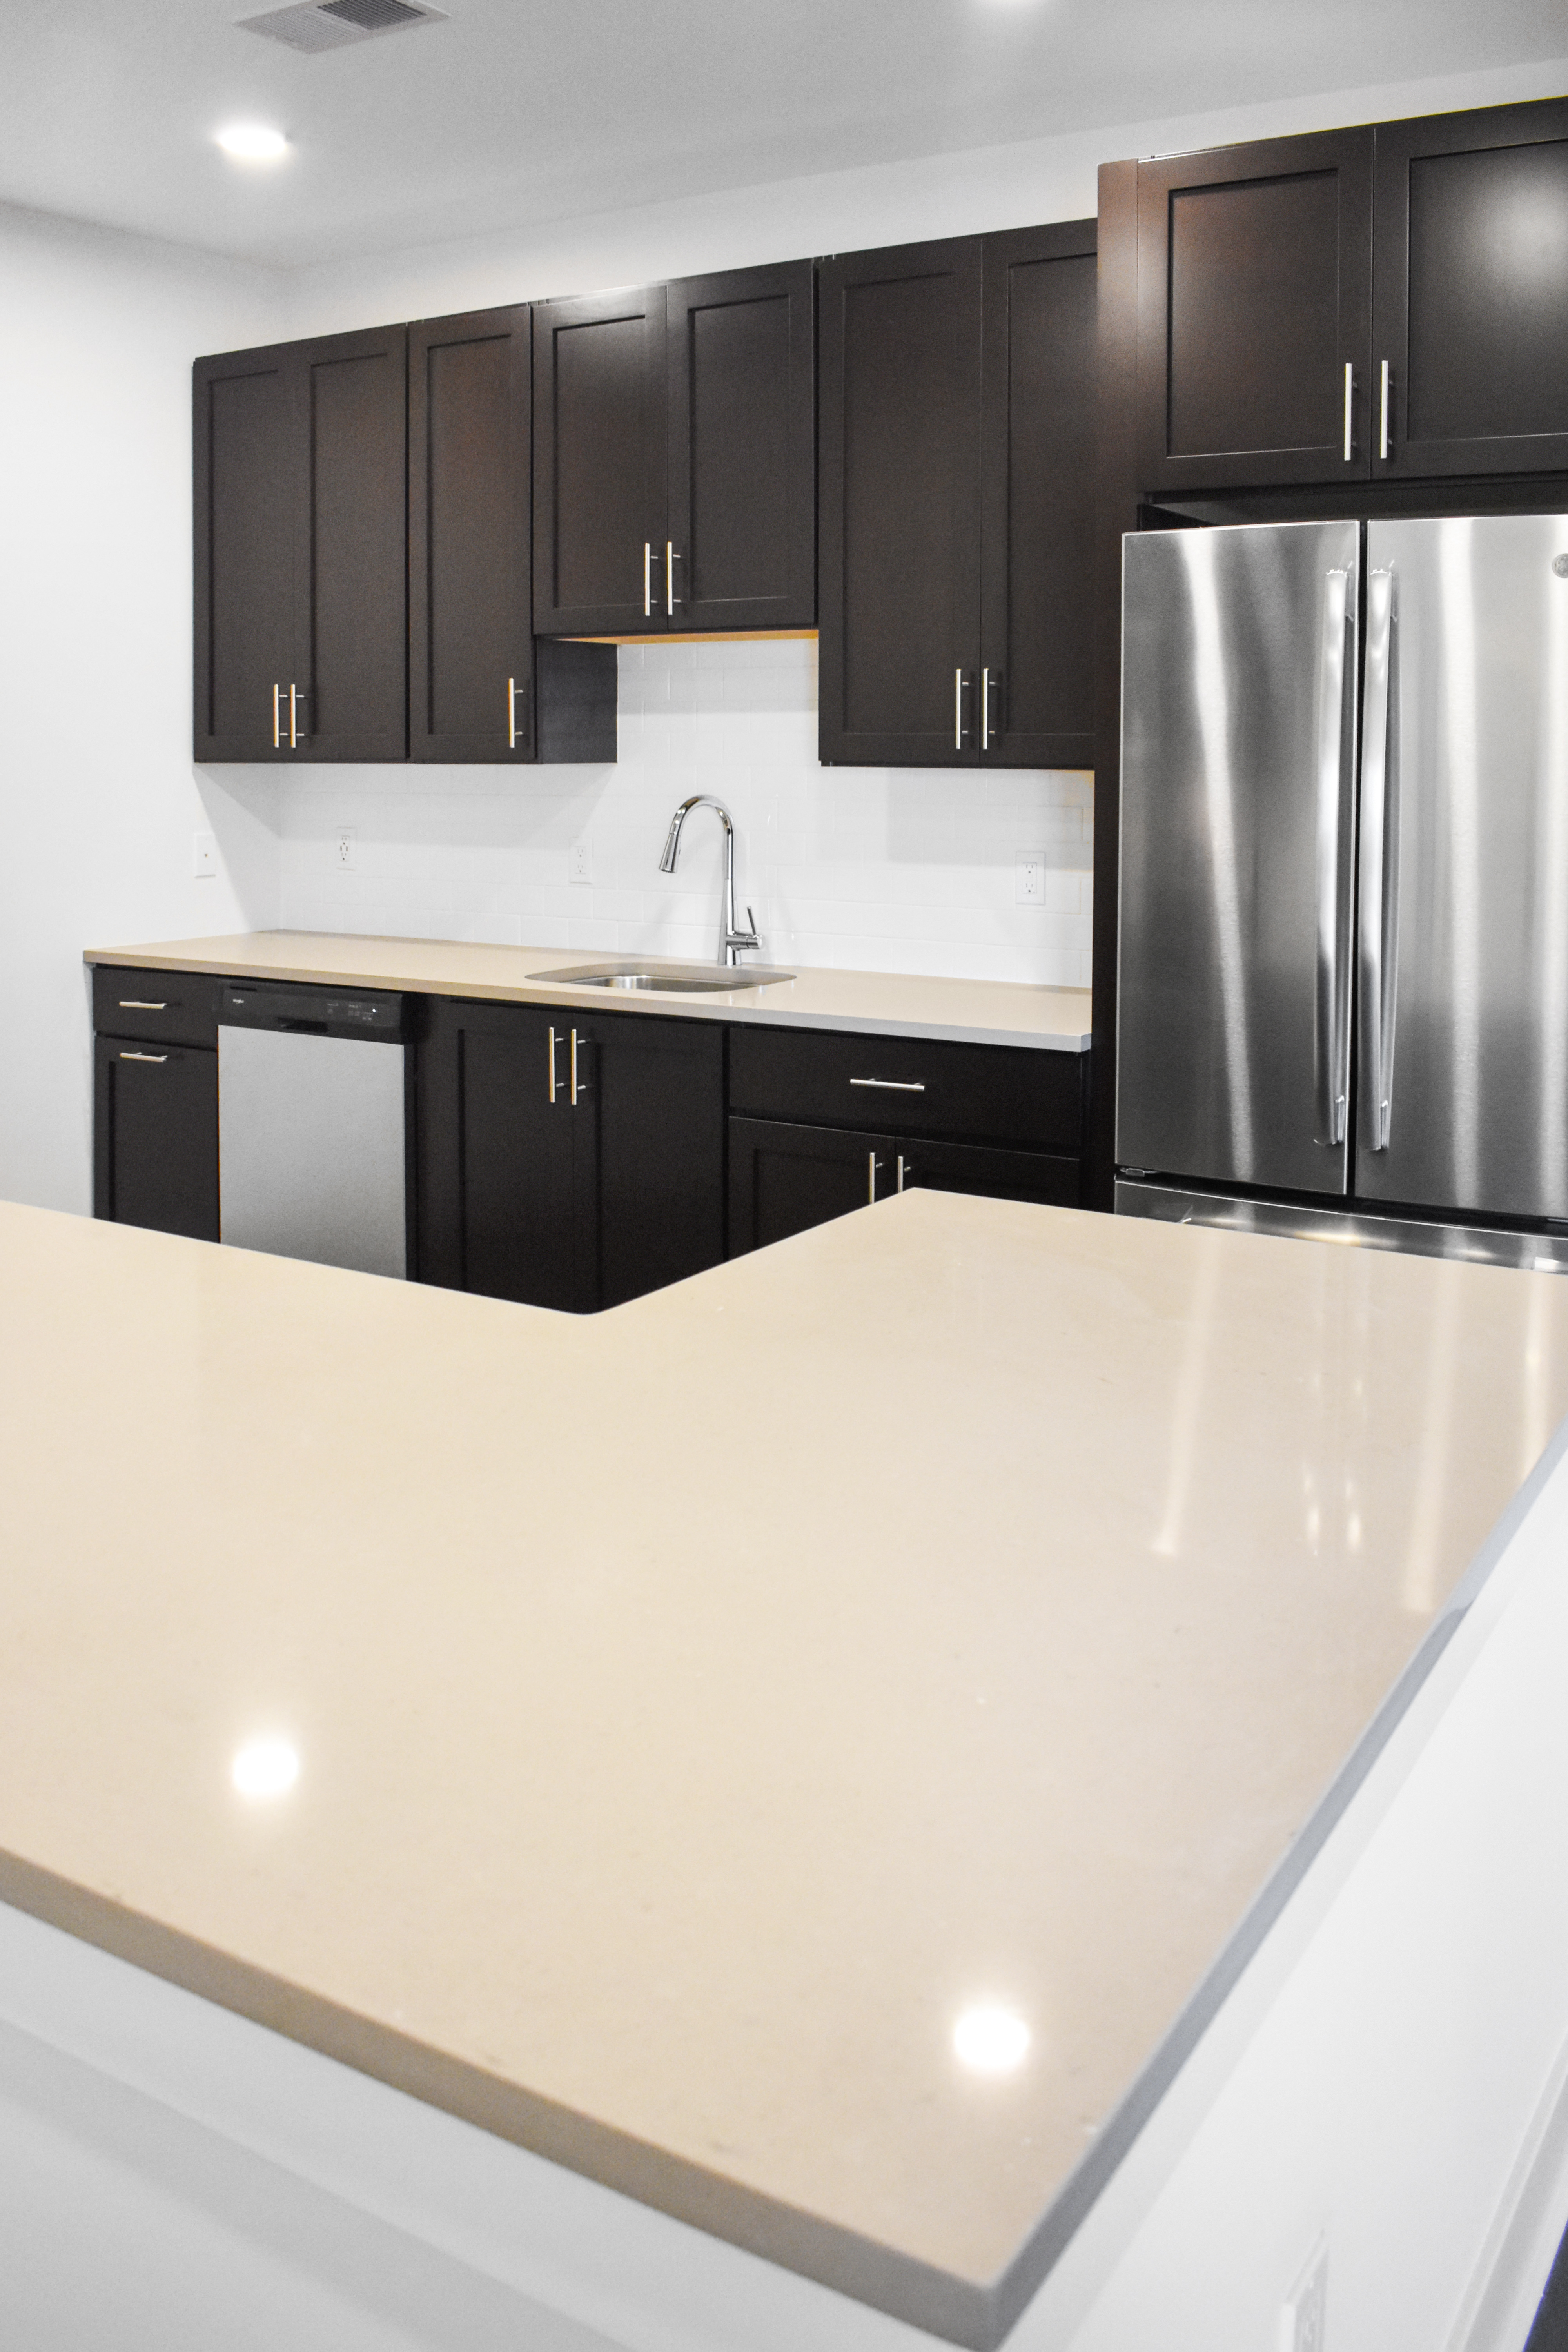 745 Hamilton New Apartments Kitchen Countertop Somerset New Jersey